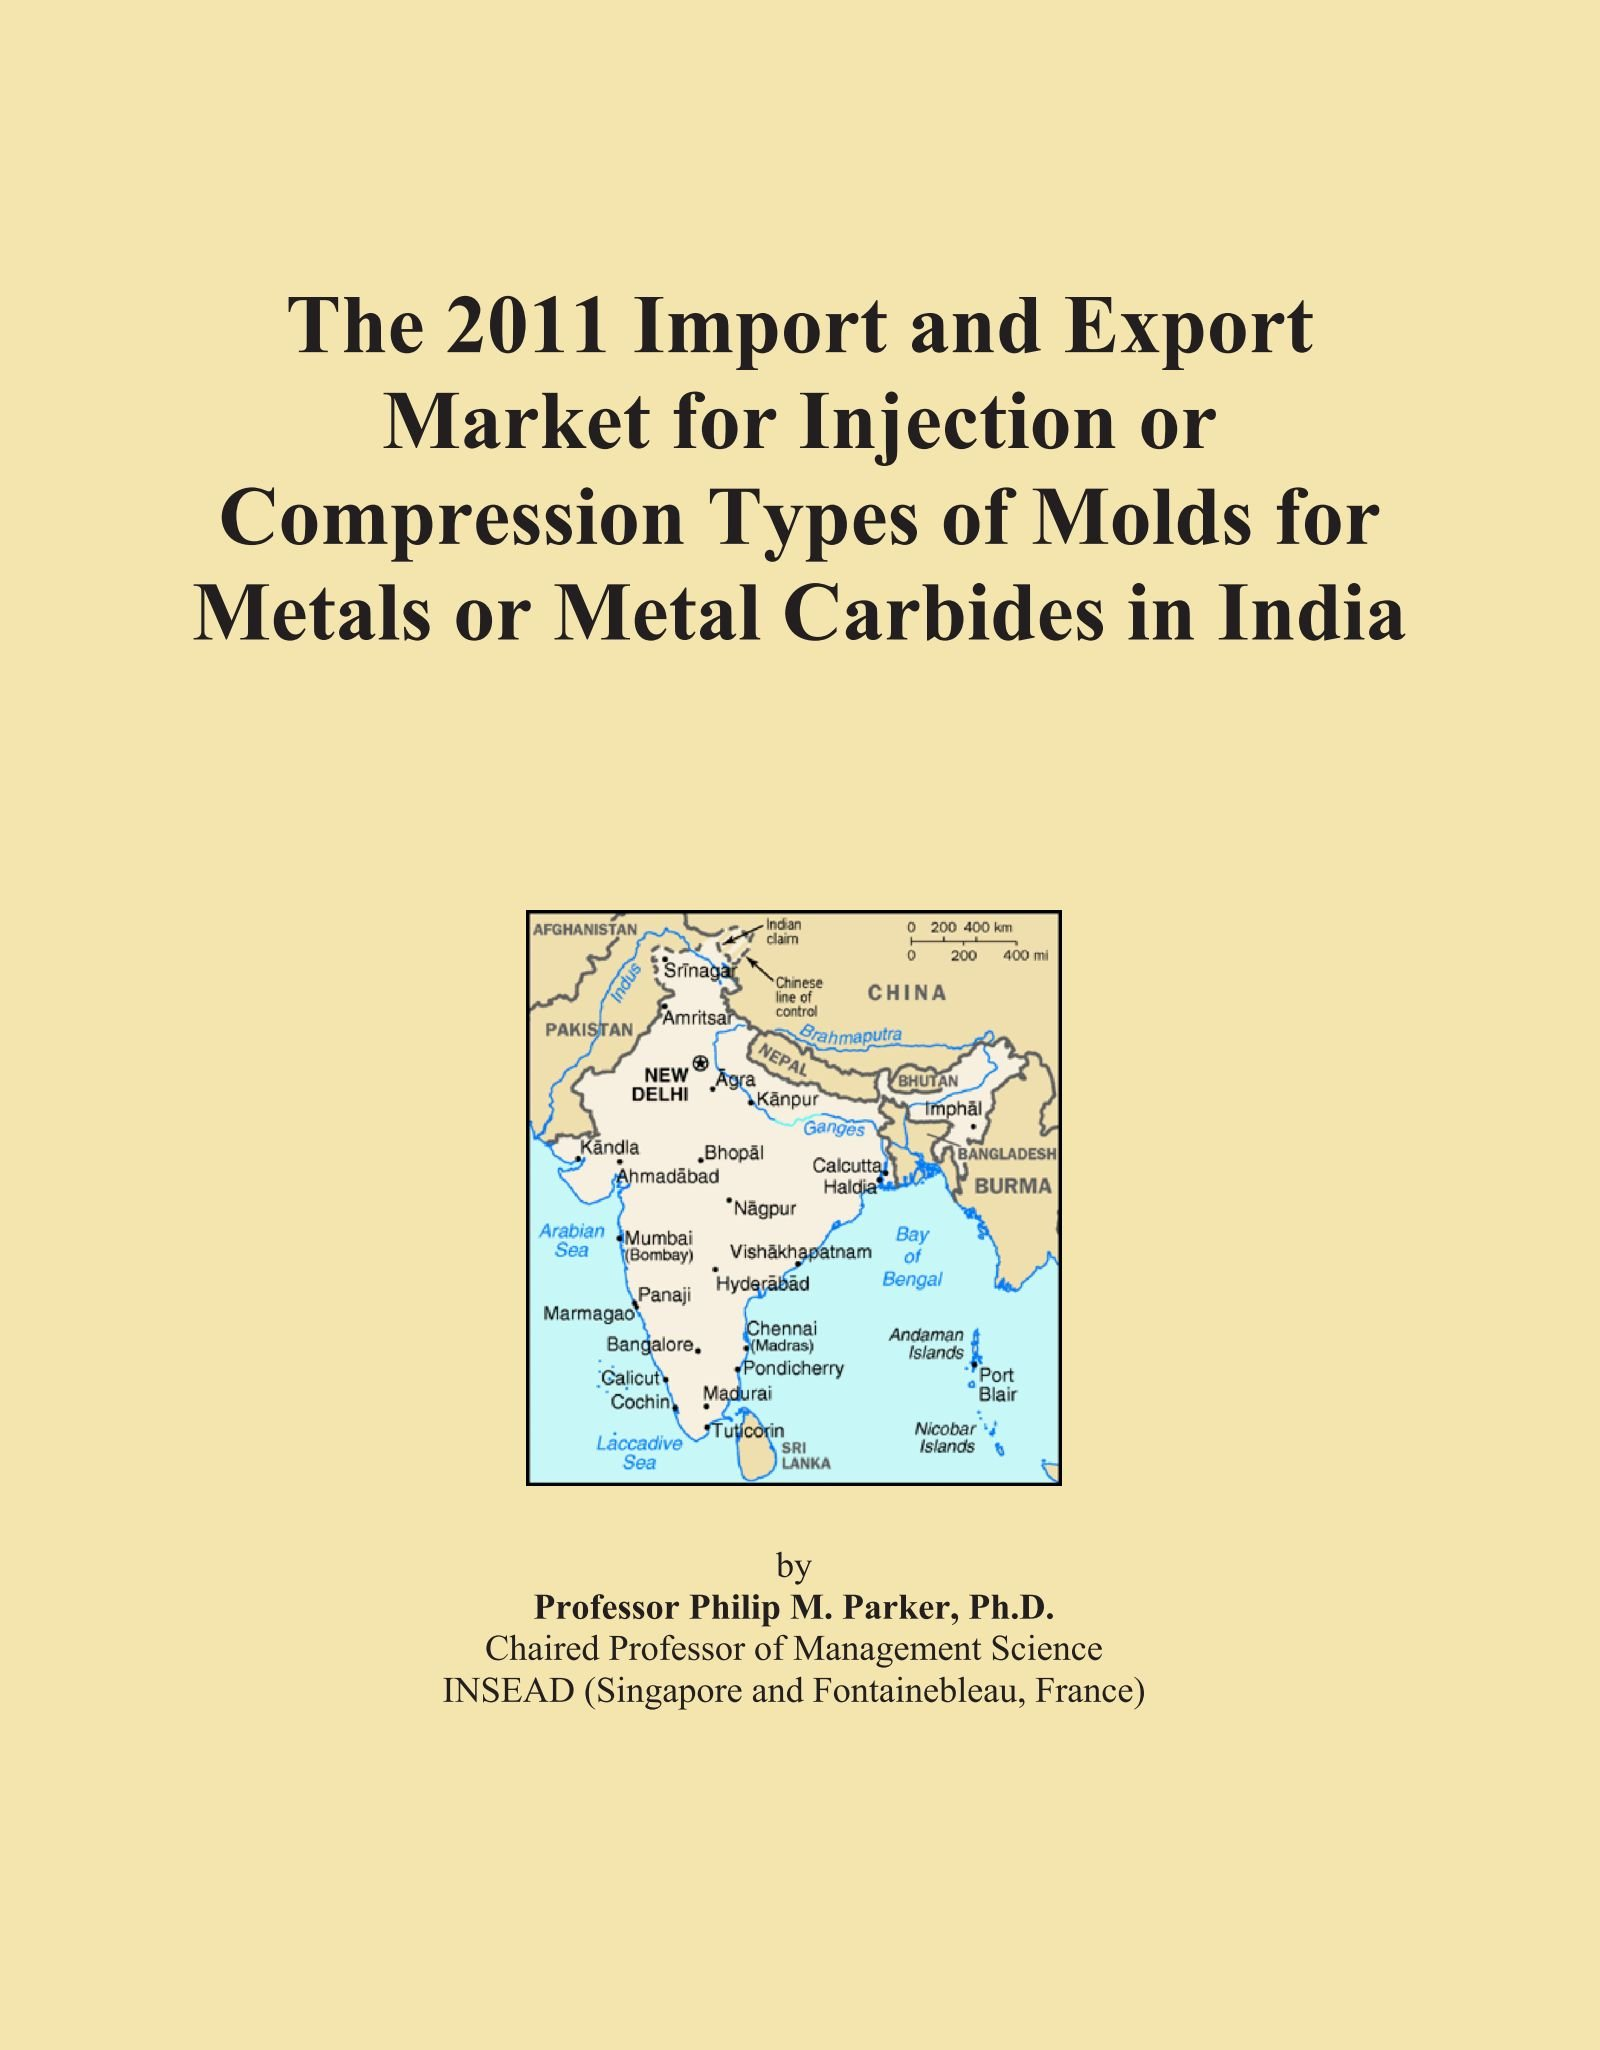 The 2011 Import and Export Market for Injection or